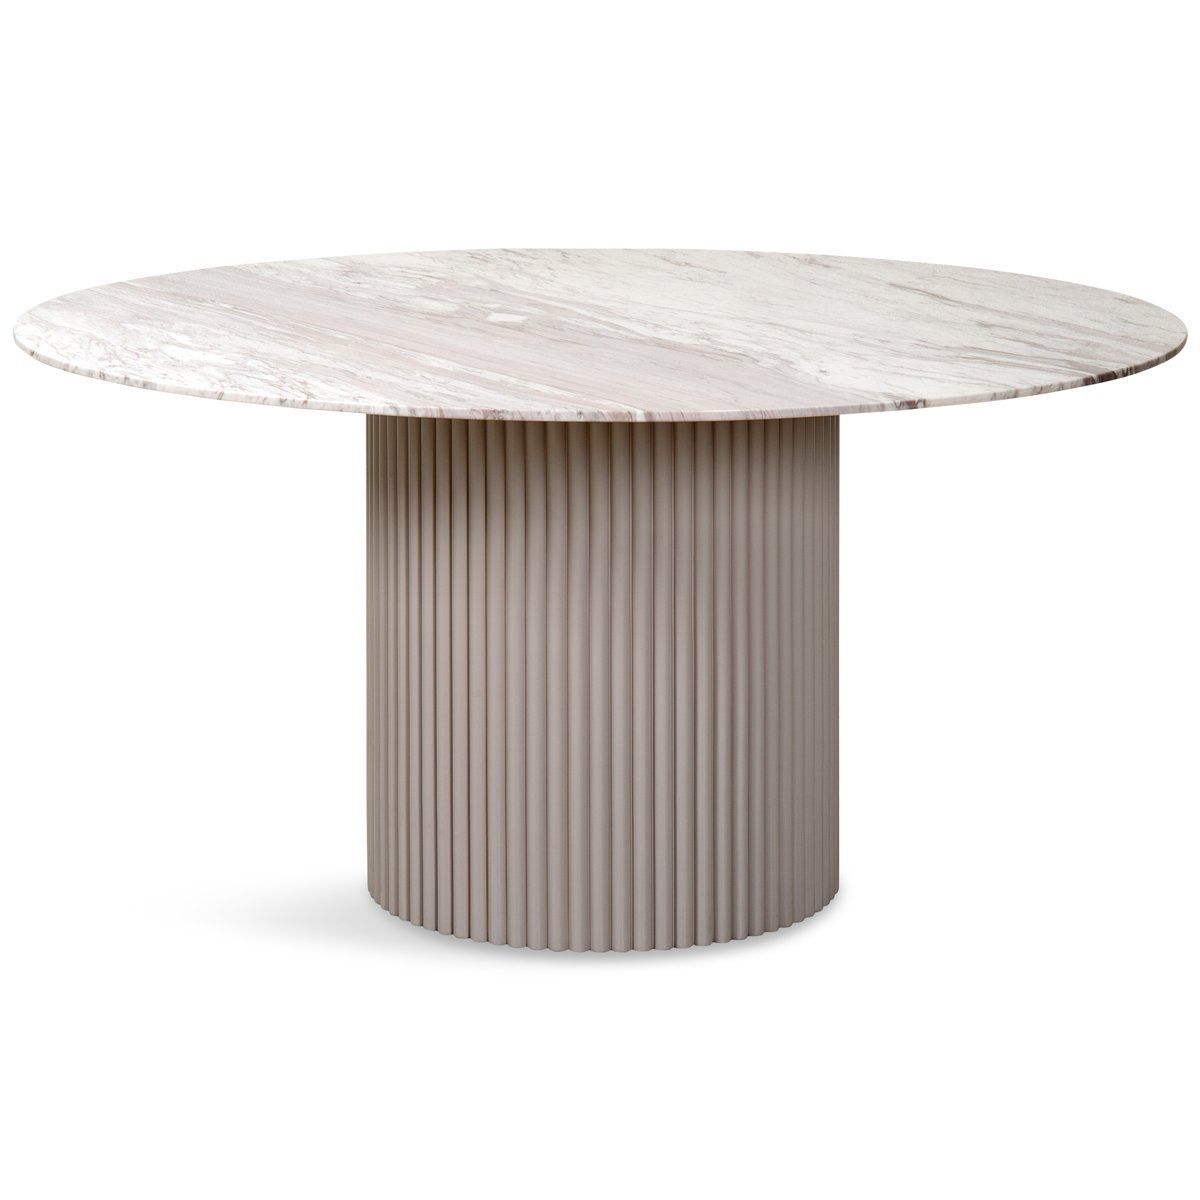 Ubud Round Dining Table In 2021 Round Marble Dining Table Dining Table Marble Round Dining Table